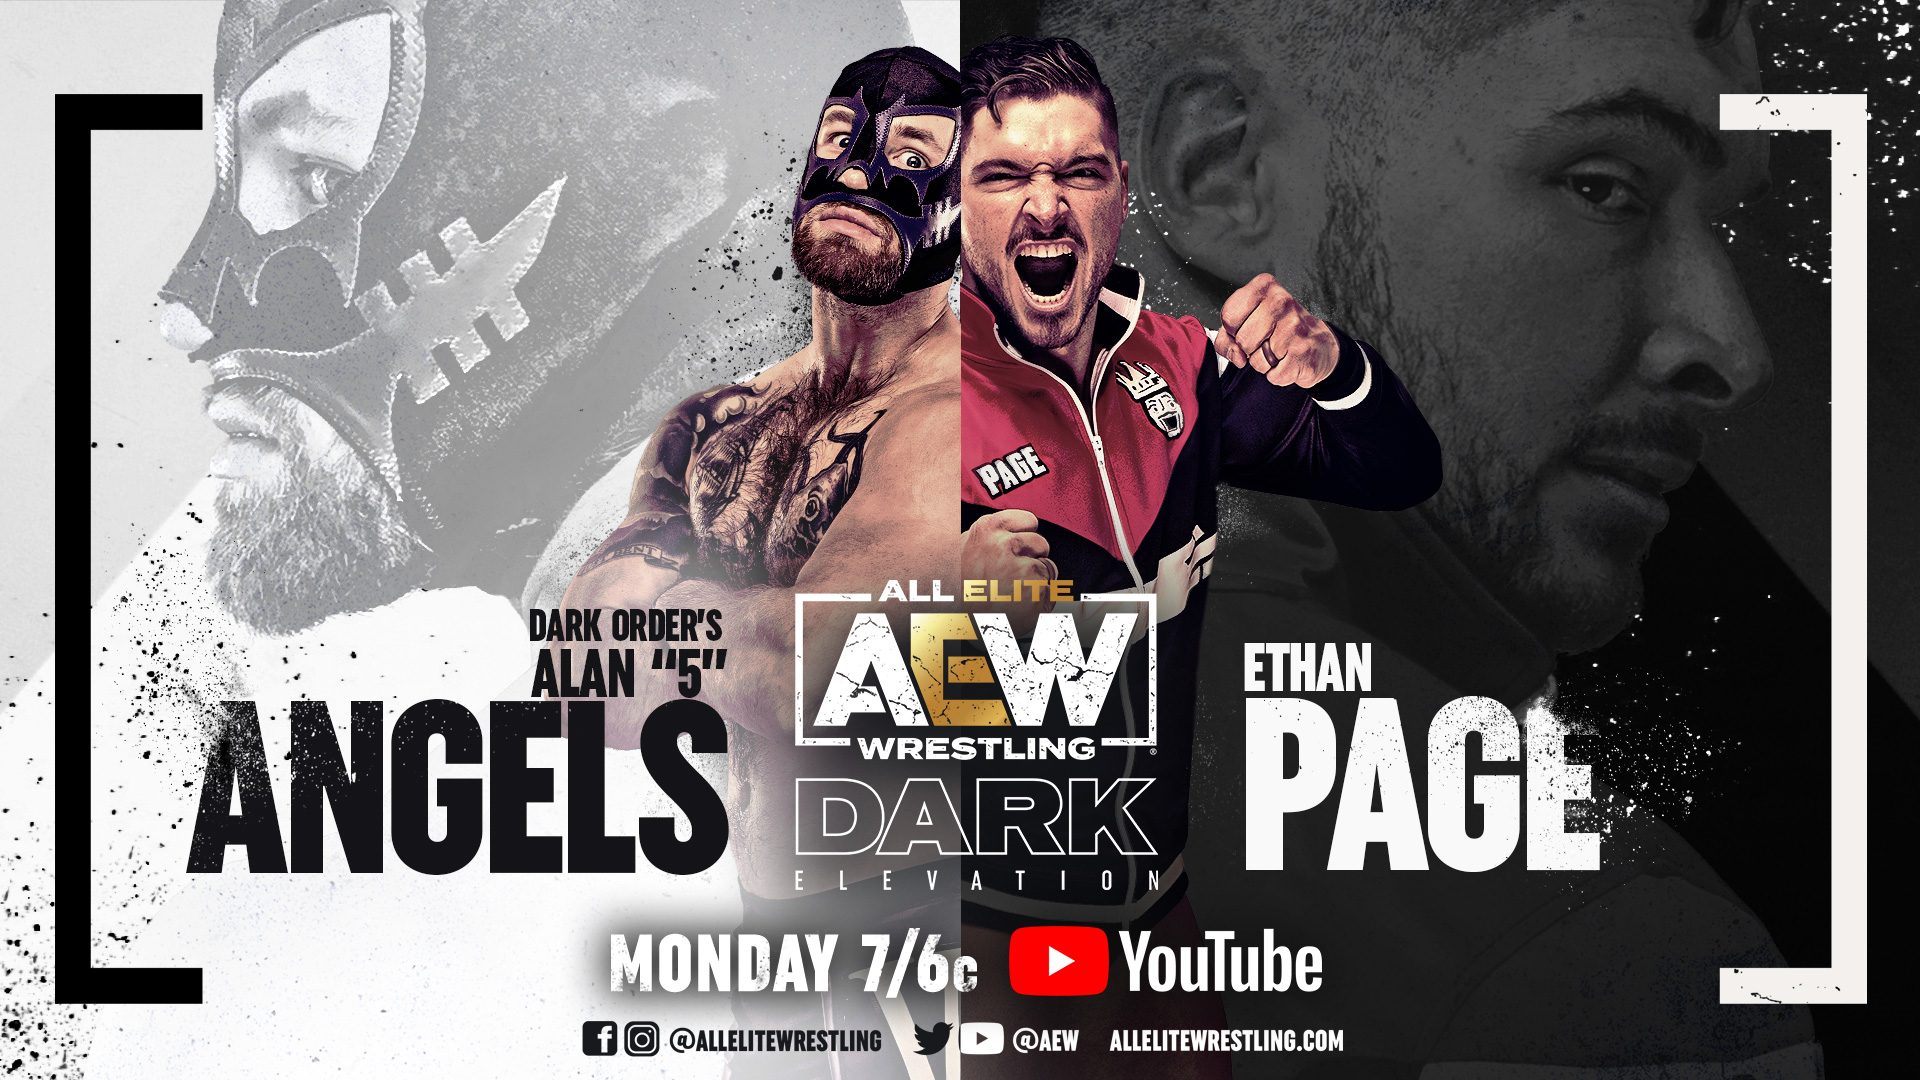 AEW Announces Triple Main Event For Monday's Dark: Elevation